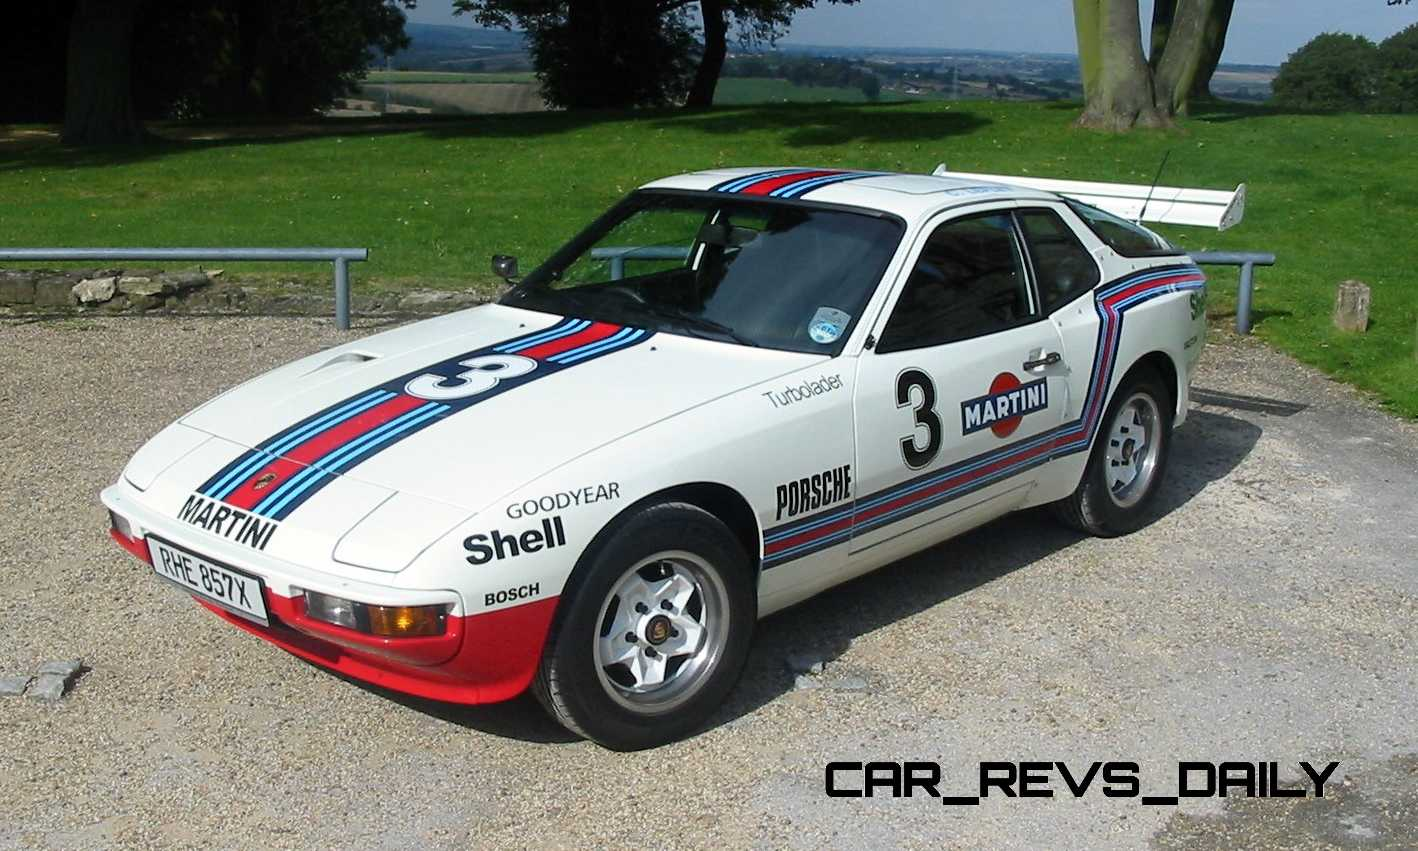 Porsche Of Jackson >> Pristine Porsche 924 Martini Rally Car Up For Grabs In New UK Sweepstakes!